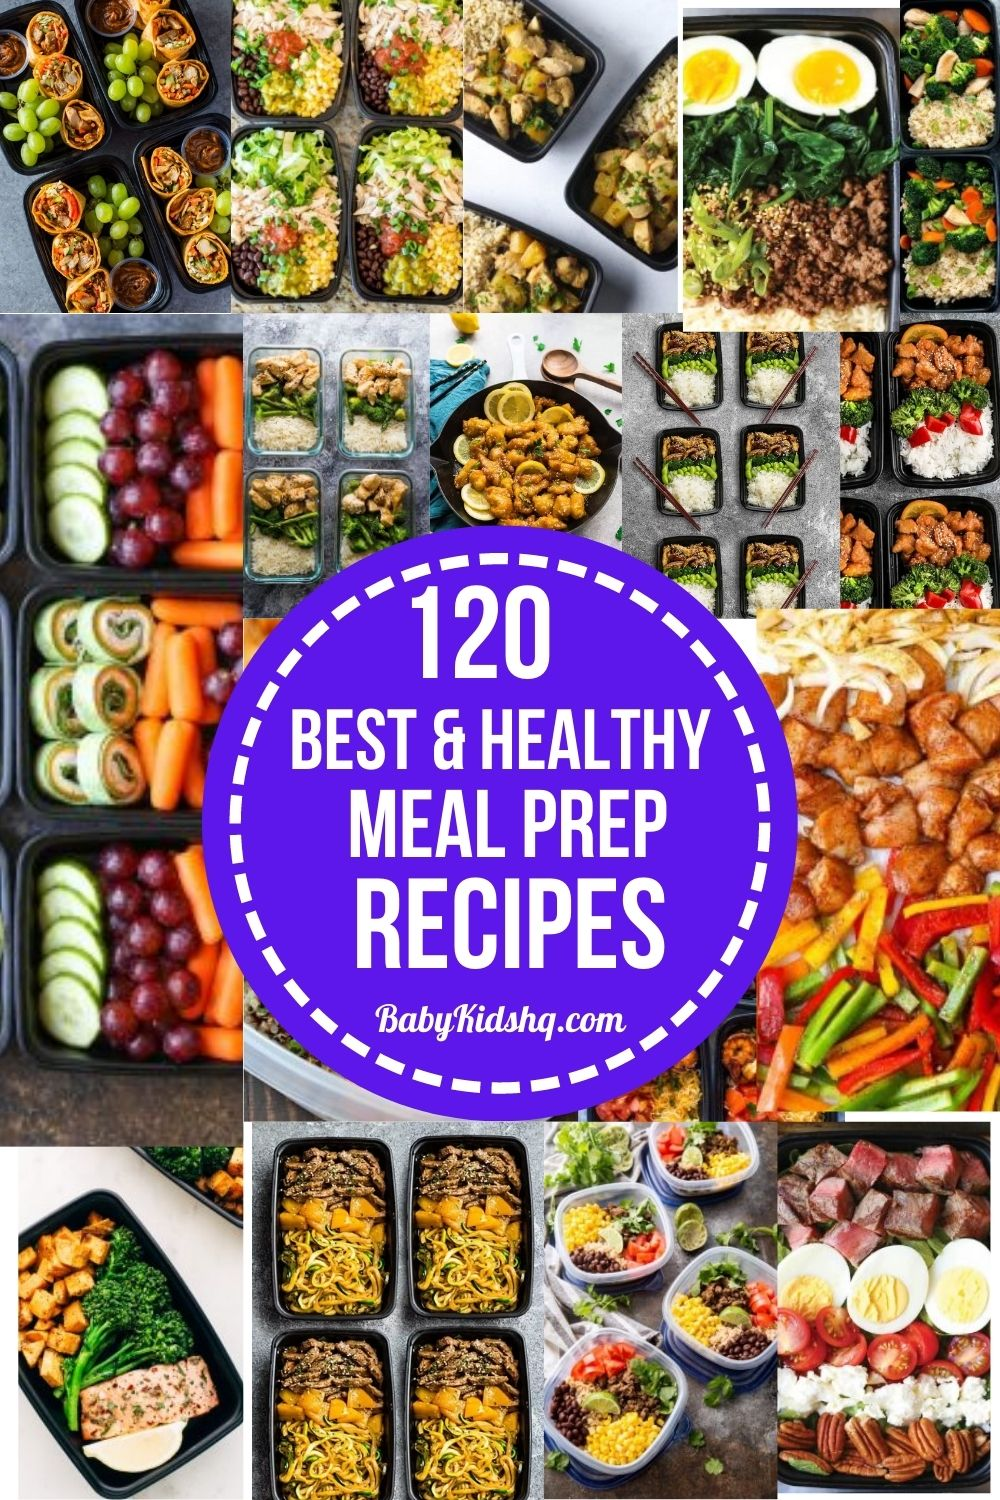 120 Best and Healthy Meal Prep Recipes 35